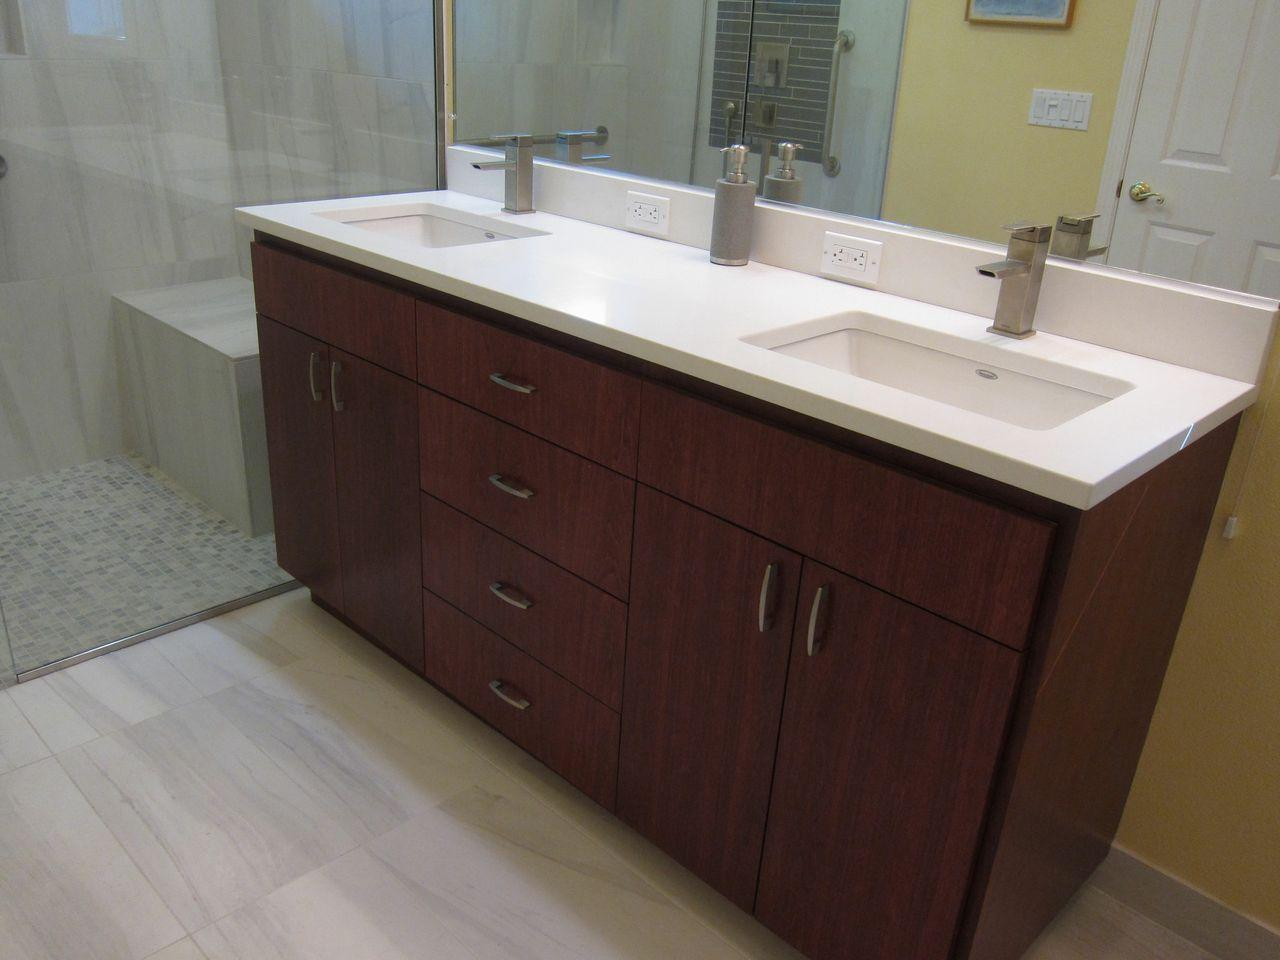 Corian Bathroom Vanity Tops : Most popular bathroom vanity tops materials styles